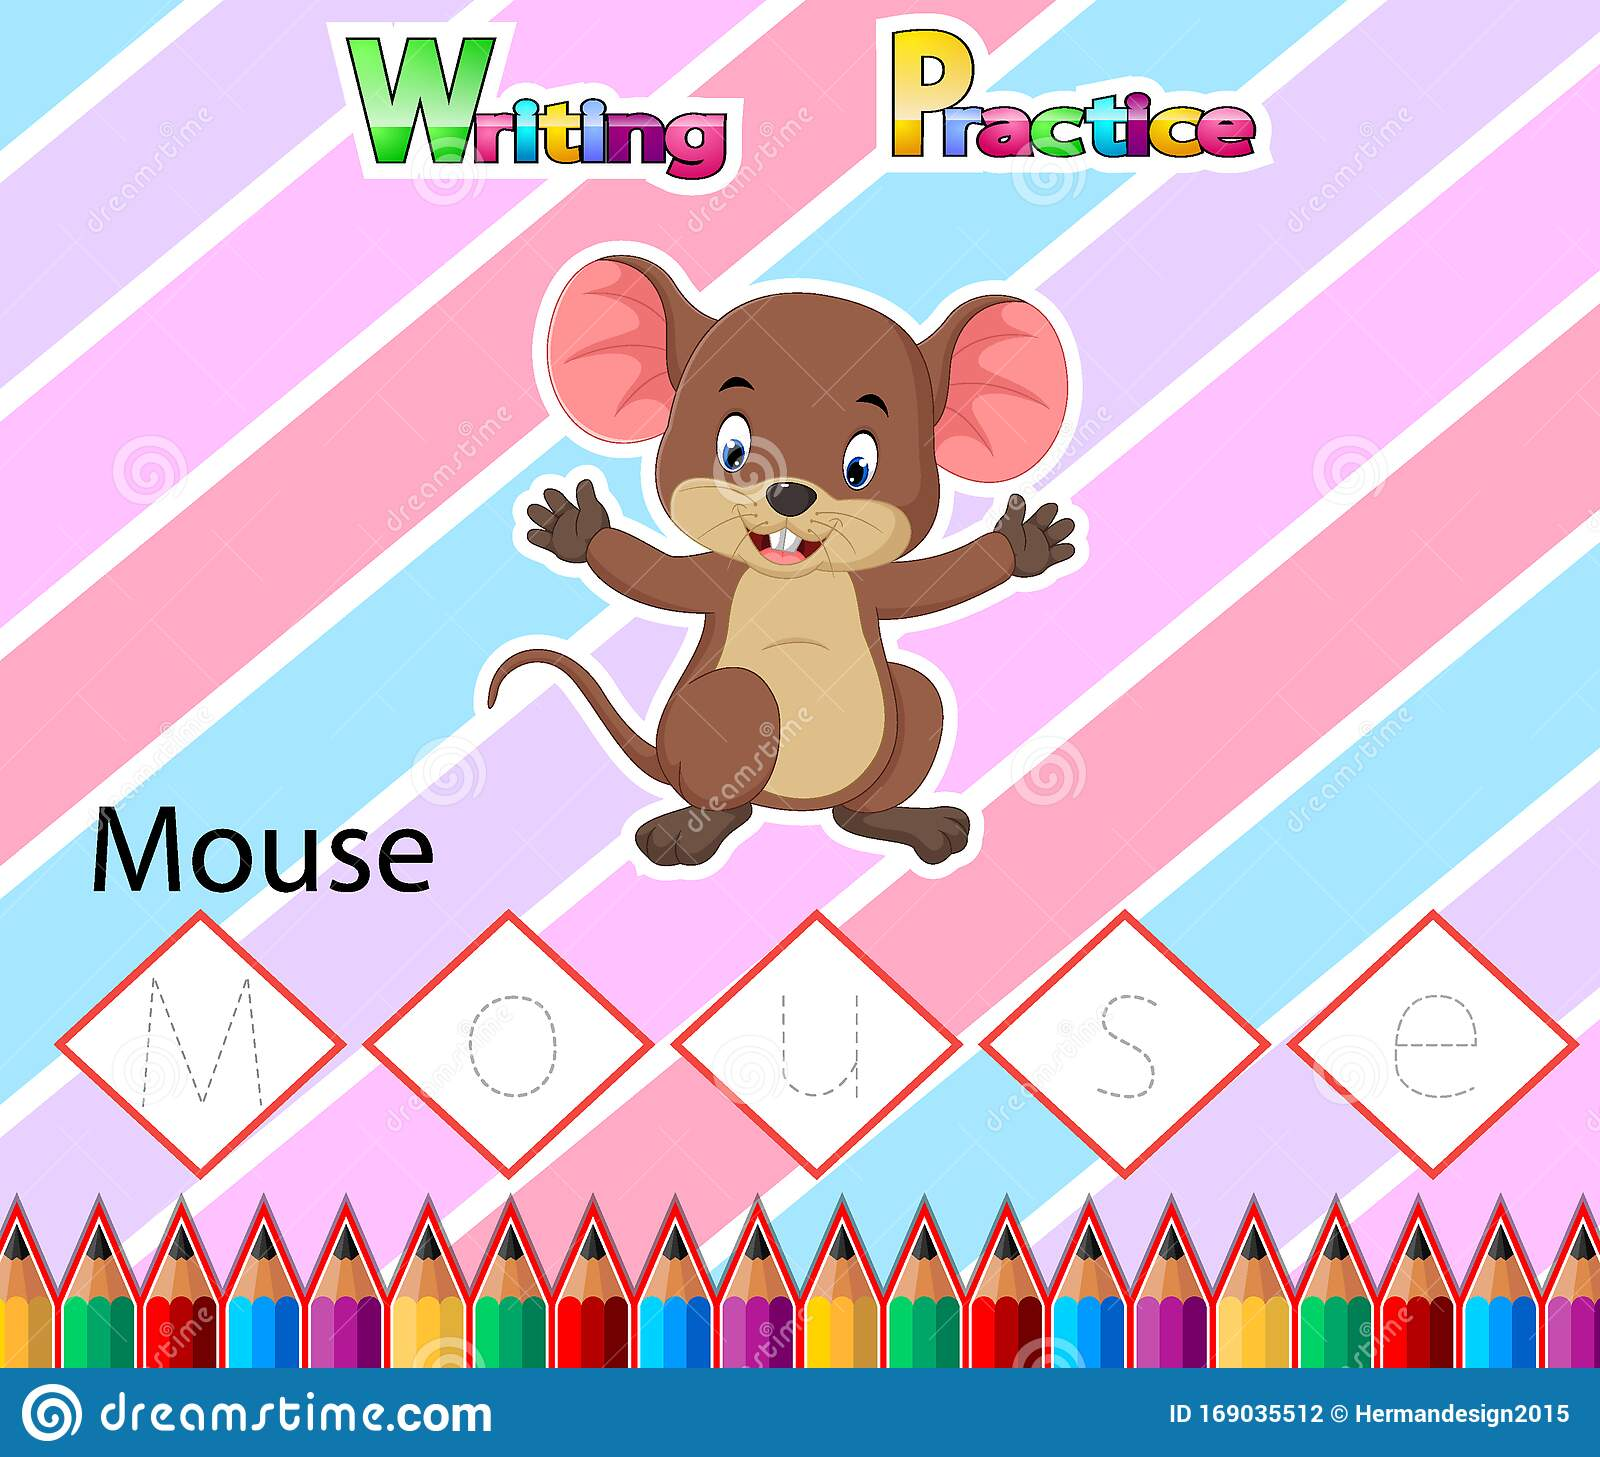 Worksheet Writing Practice Alphabet M For Mouse Stock